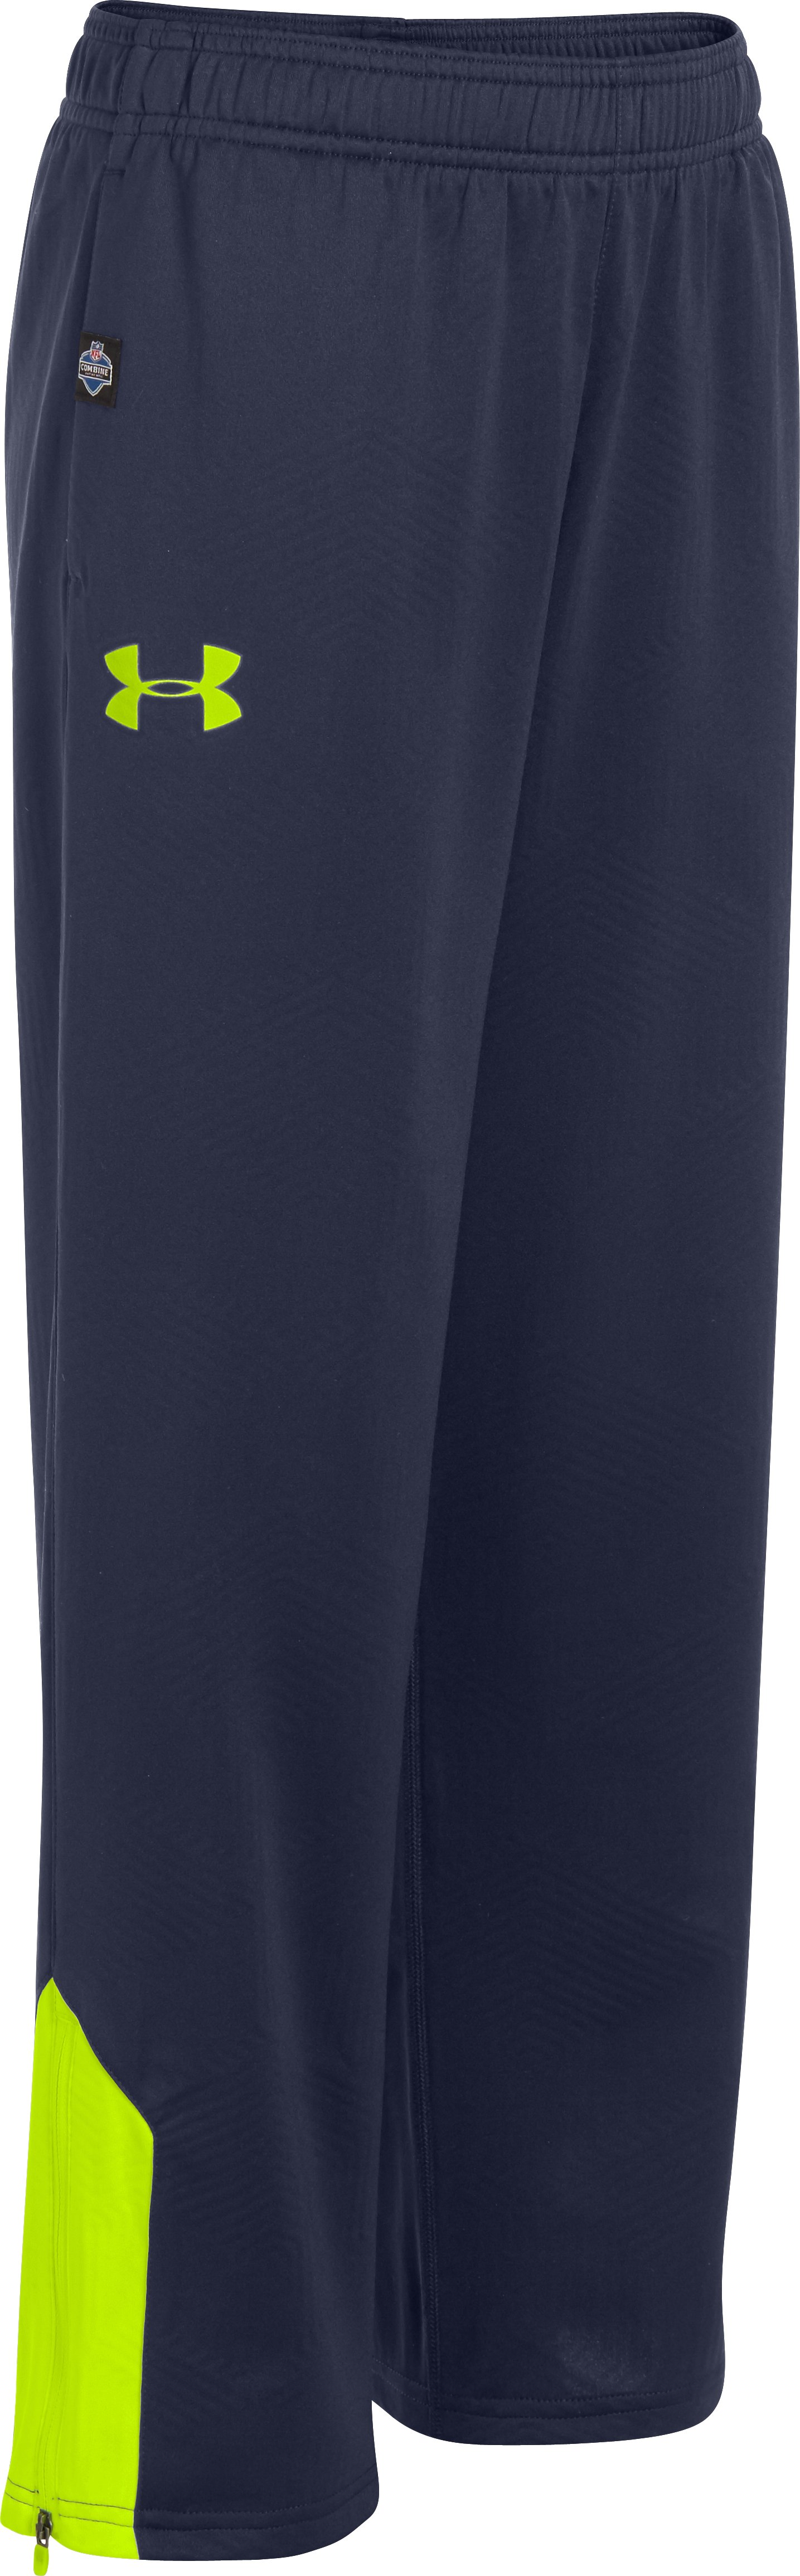 Boys' NFL Combine Authentic ColdGear® Infrared Warm-Up Pants, Midnight Navy, zoomed image